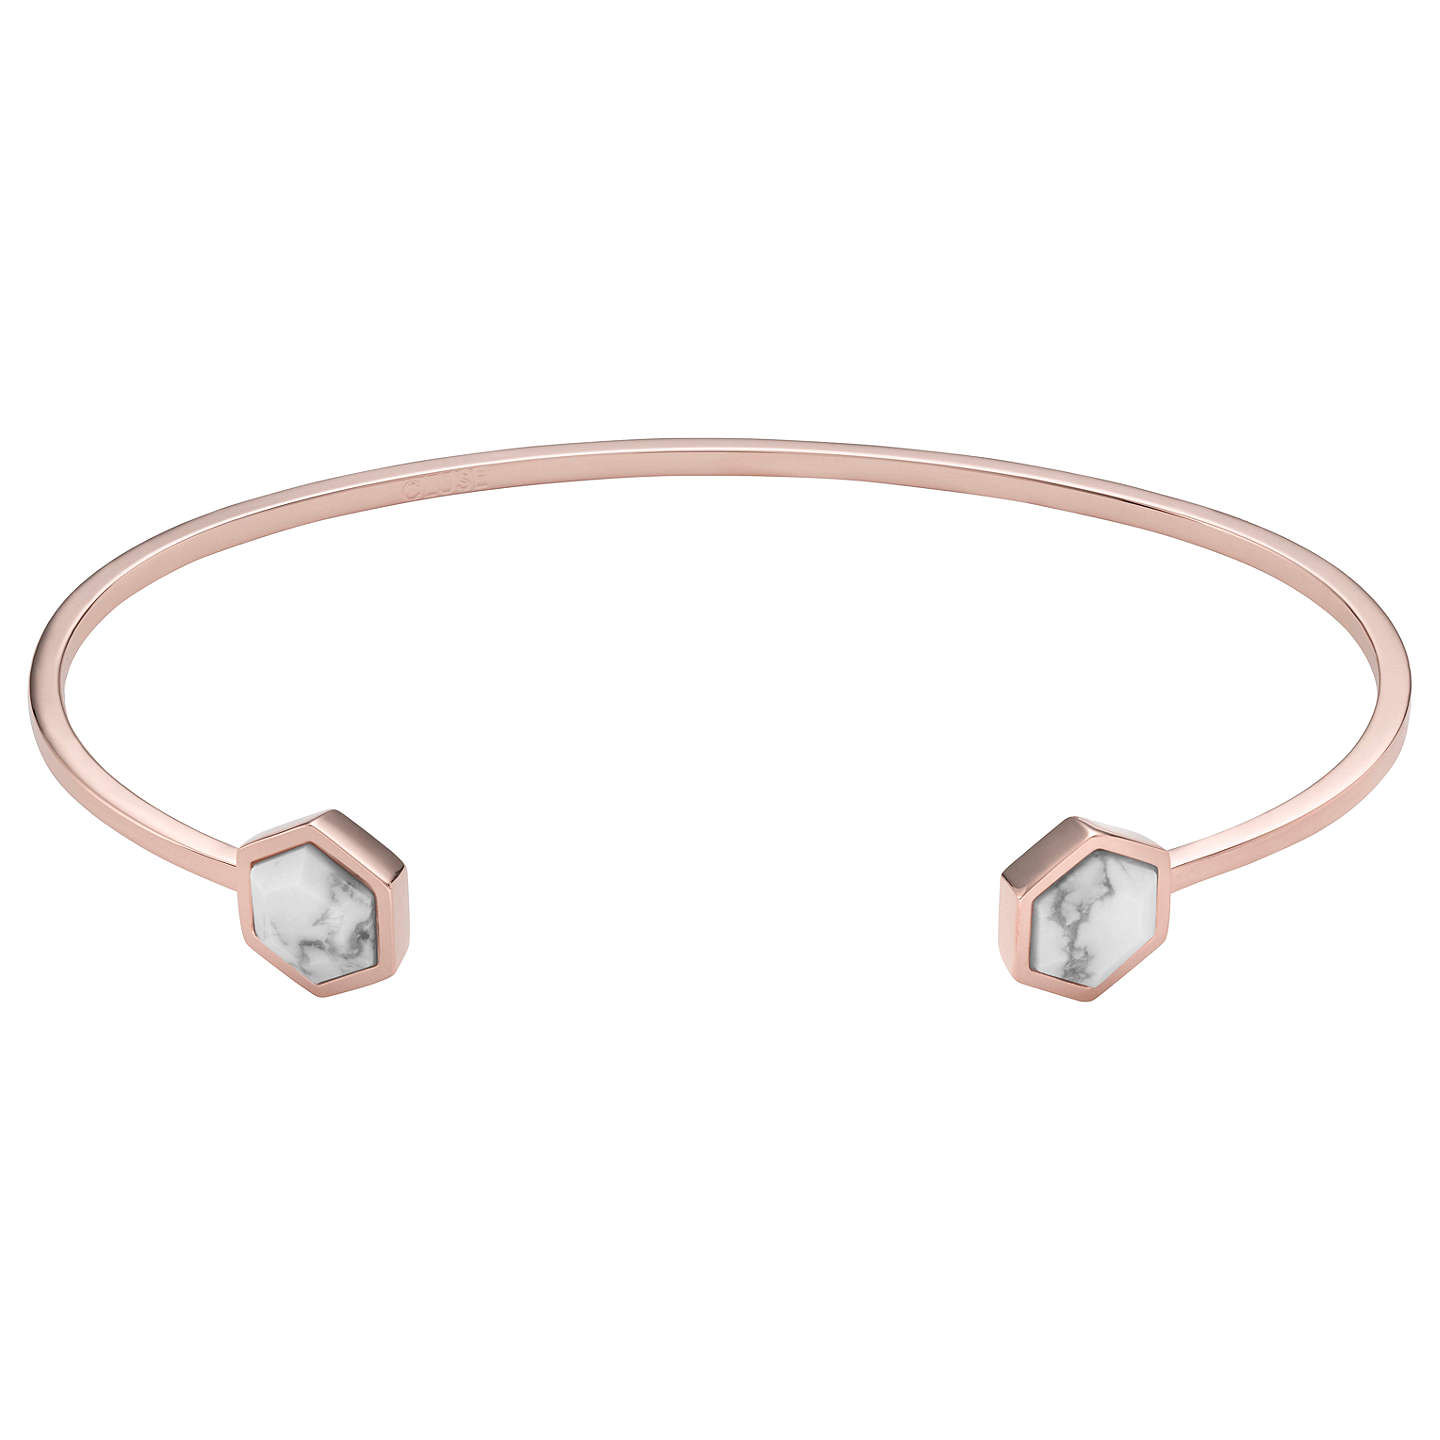 shaped adjustable open bangle bangles to round gold perfection ring shell bracelets products